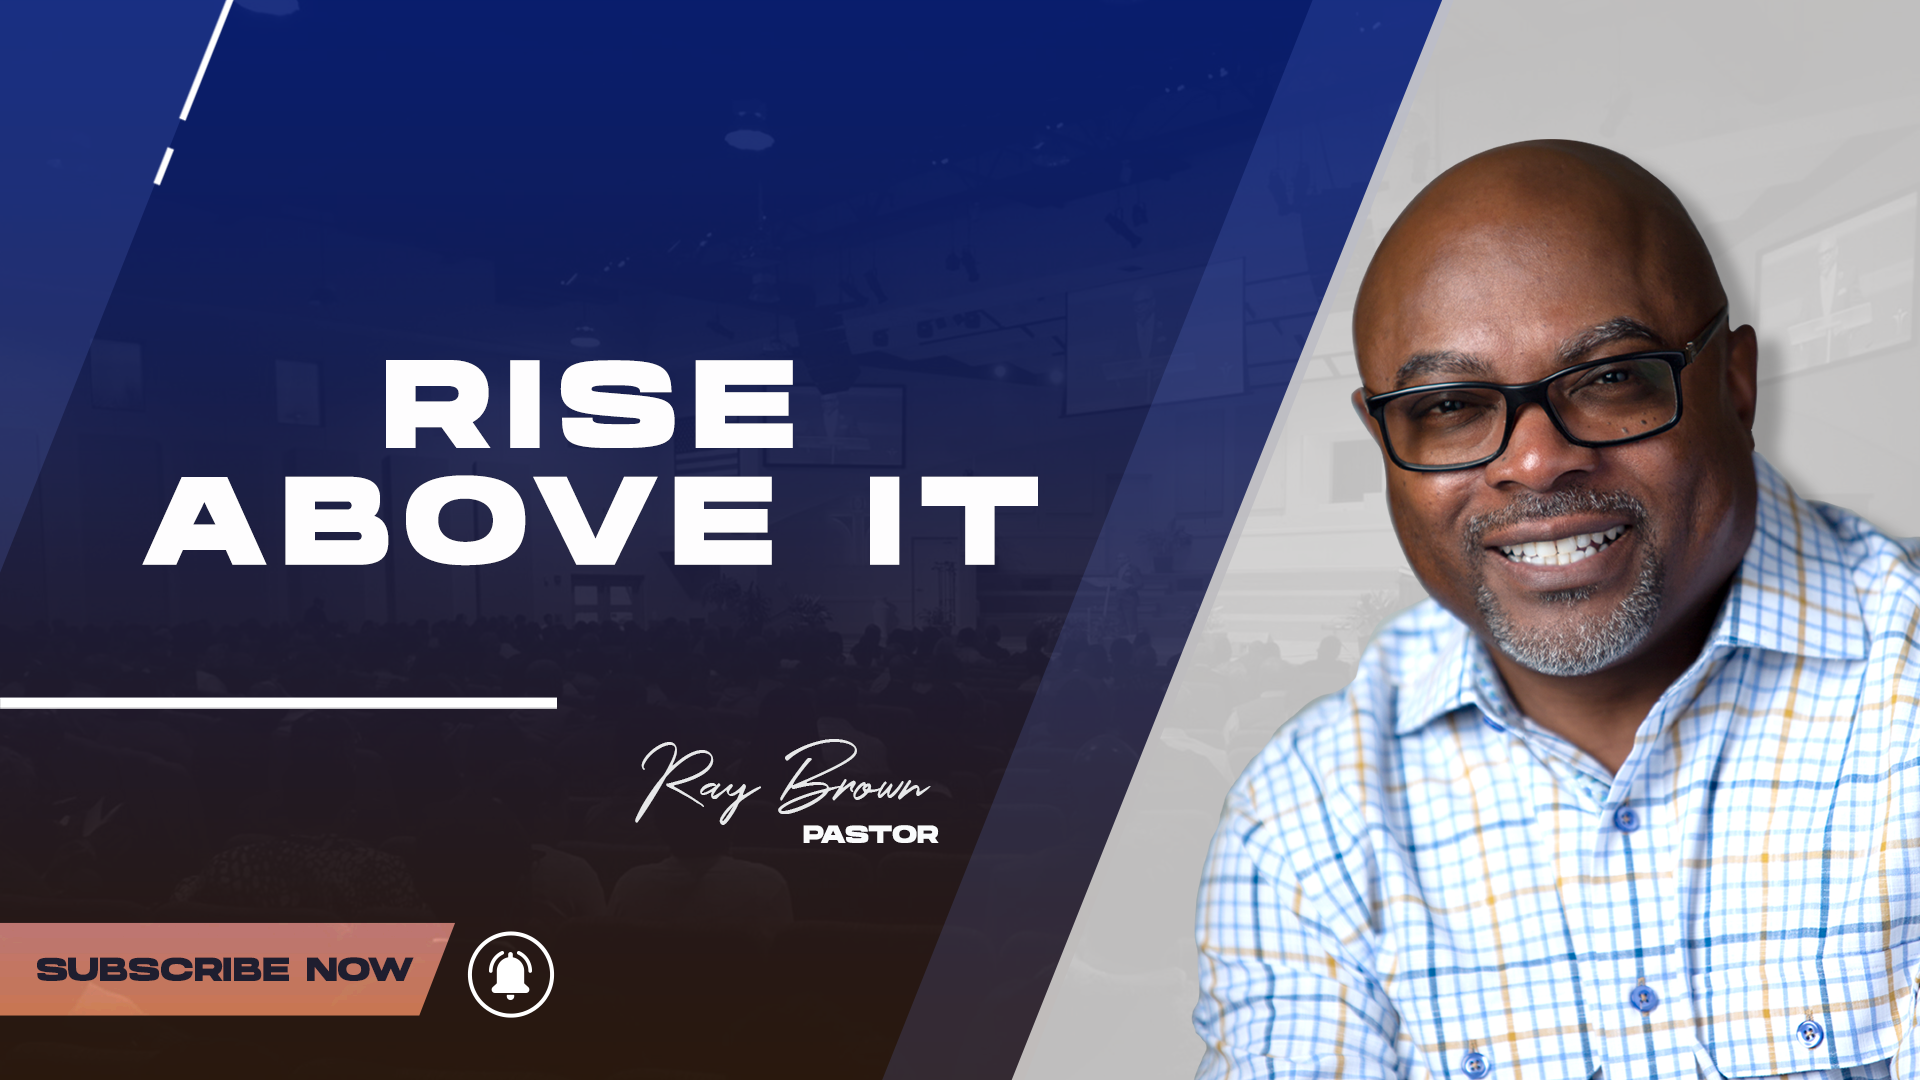 040421 RISE ABOVE IT